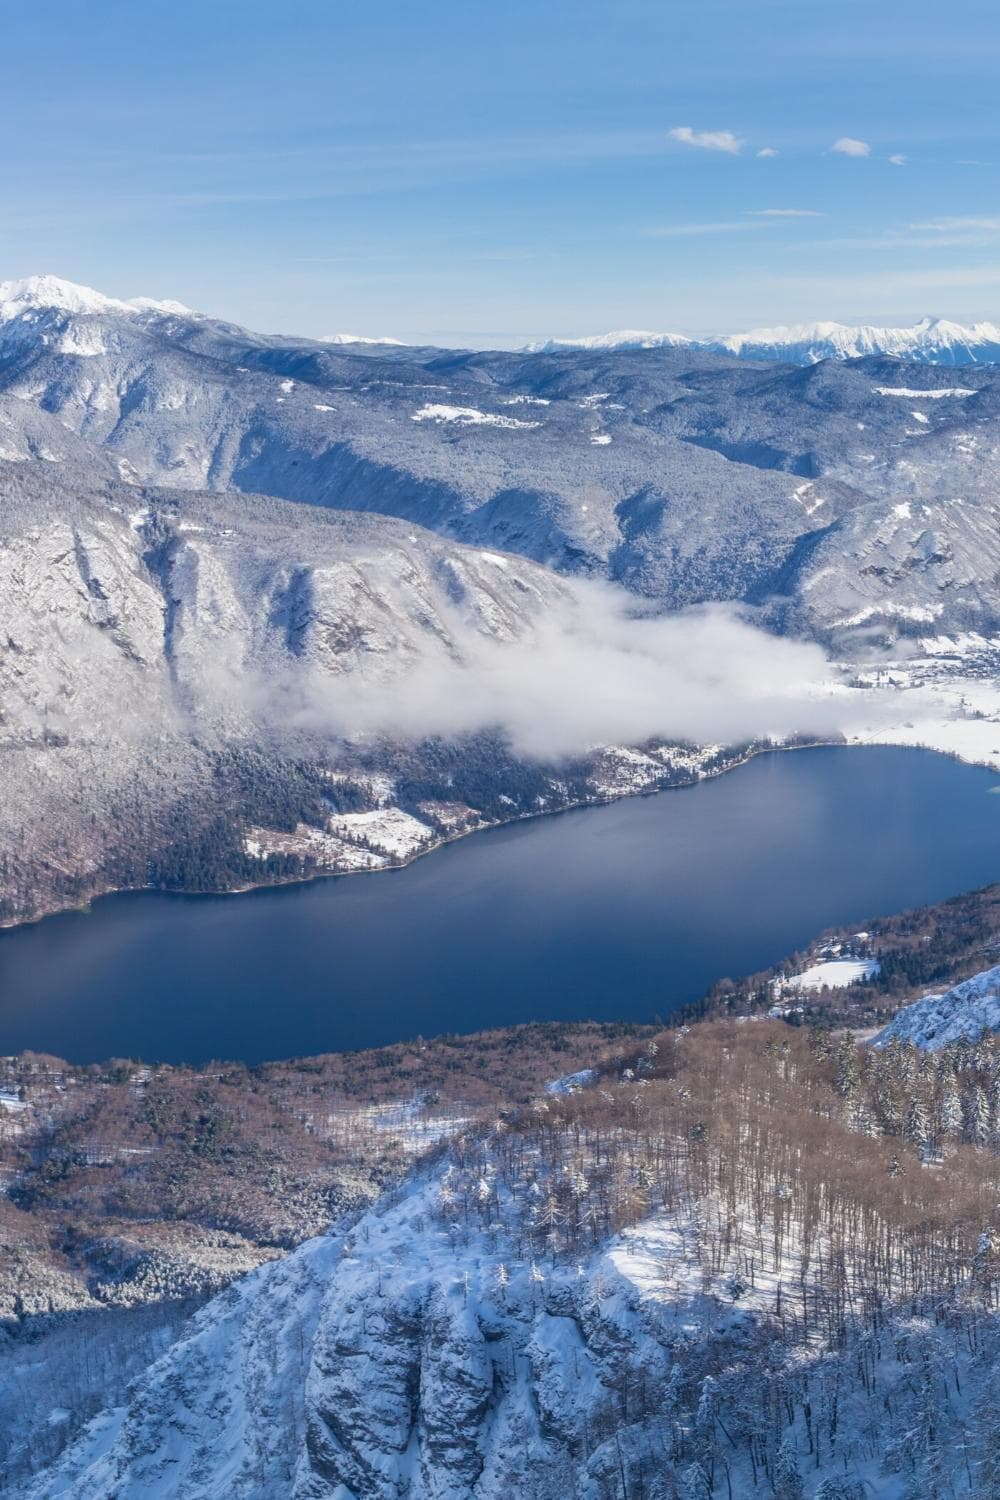 View from Vogel of Lake Bohinj